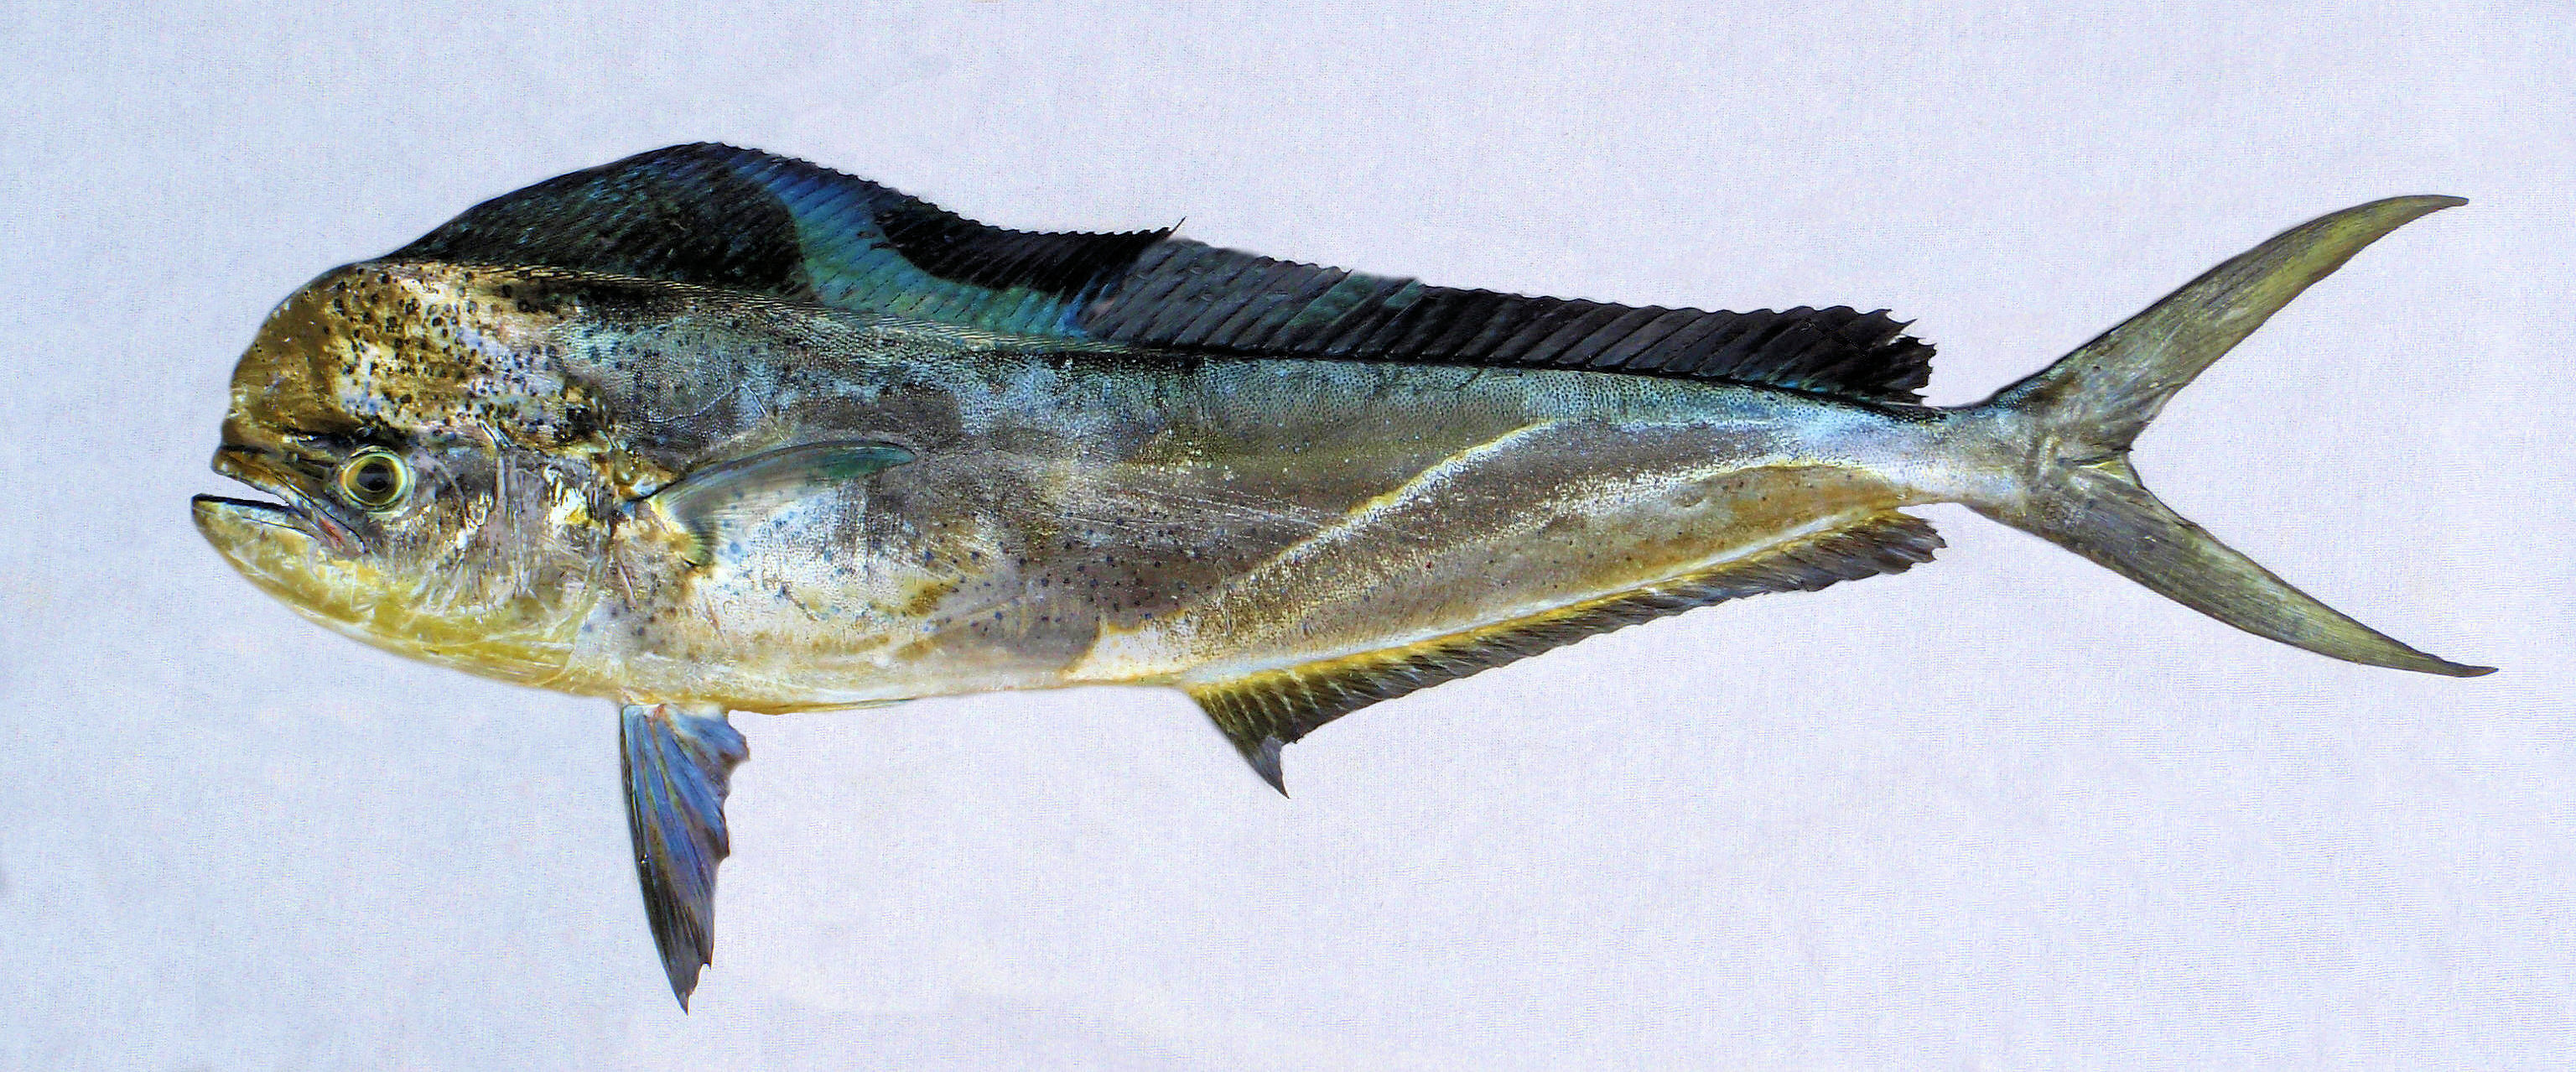 Dorado mexico fish marine life birds and terrestrial life fish caught from coastal waters off point palmilla baja california sur november 2012 fork length 112 meters 3 feet 8 inches nvjuhfo Images